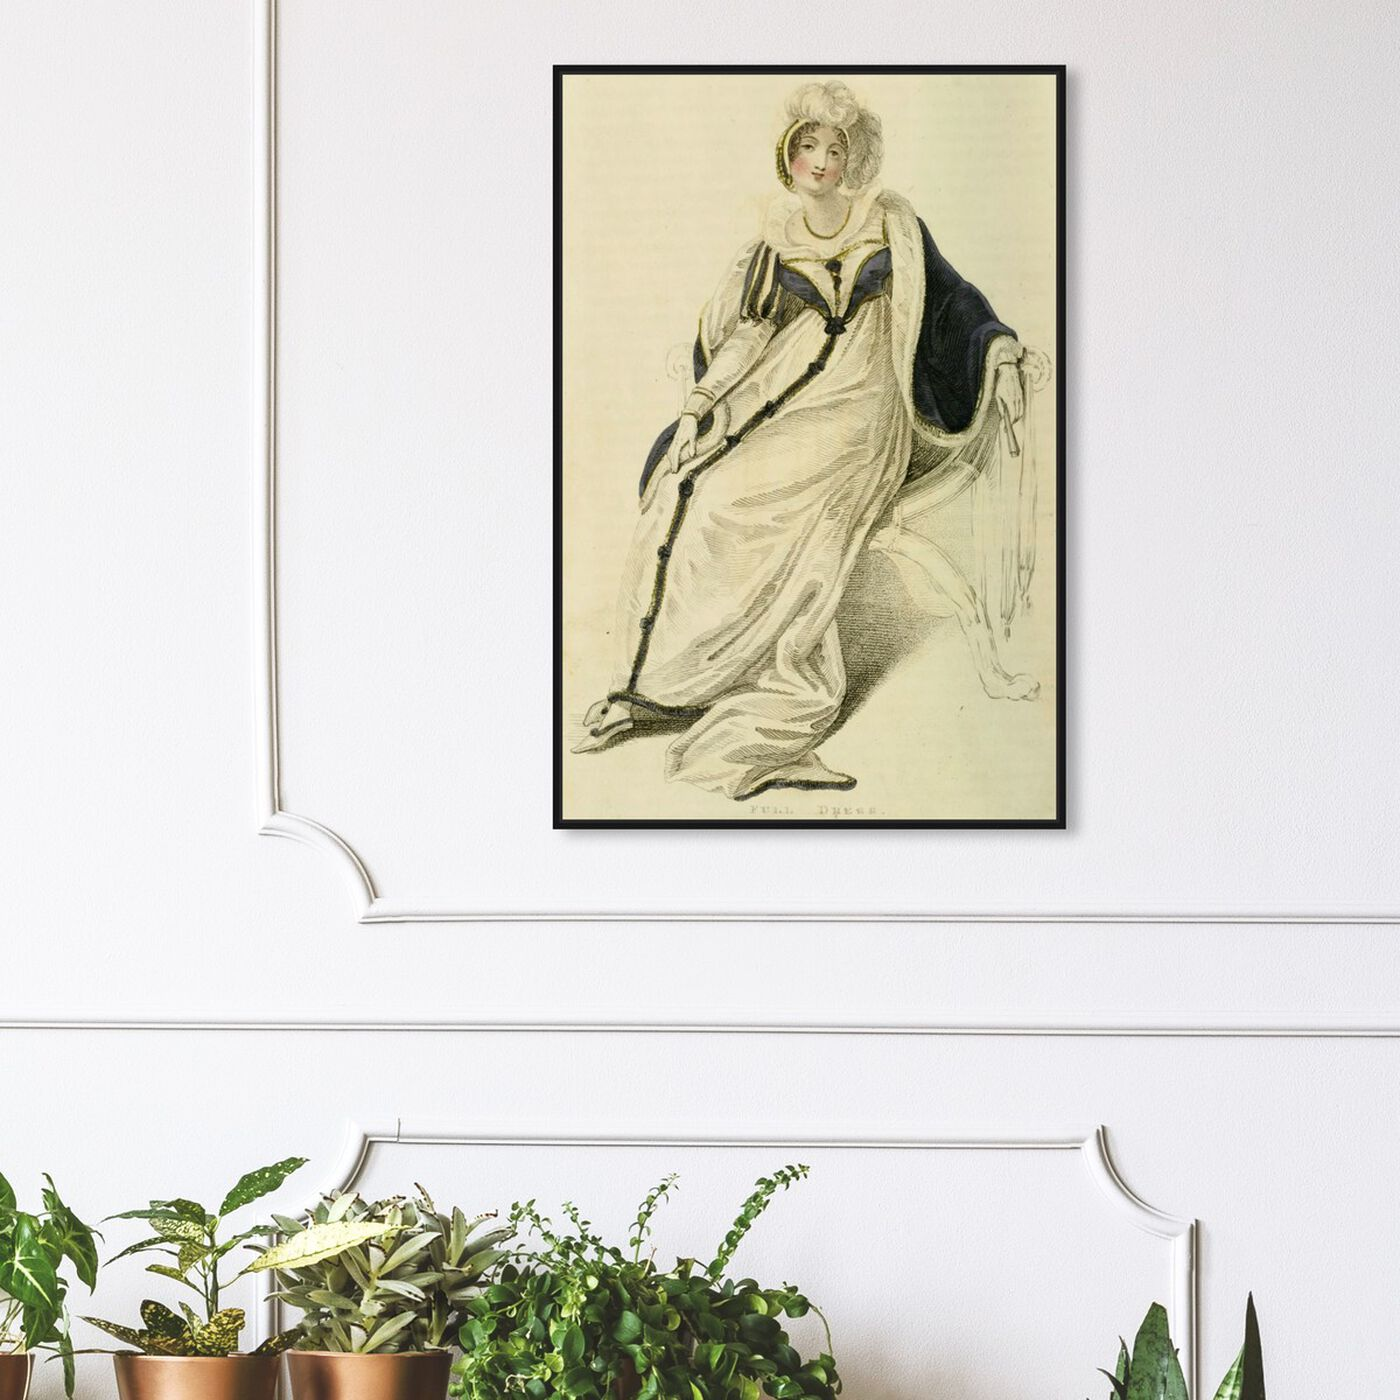 Hanging view of Full Dress III - The Art Cabinet featuring classic and figurative and realism art.